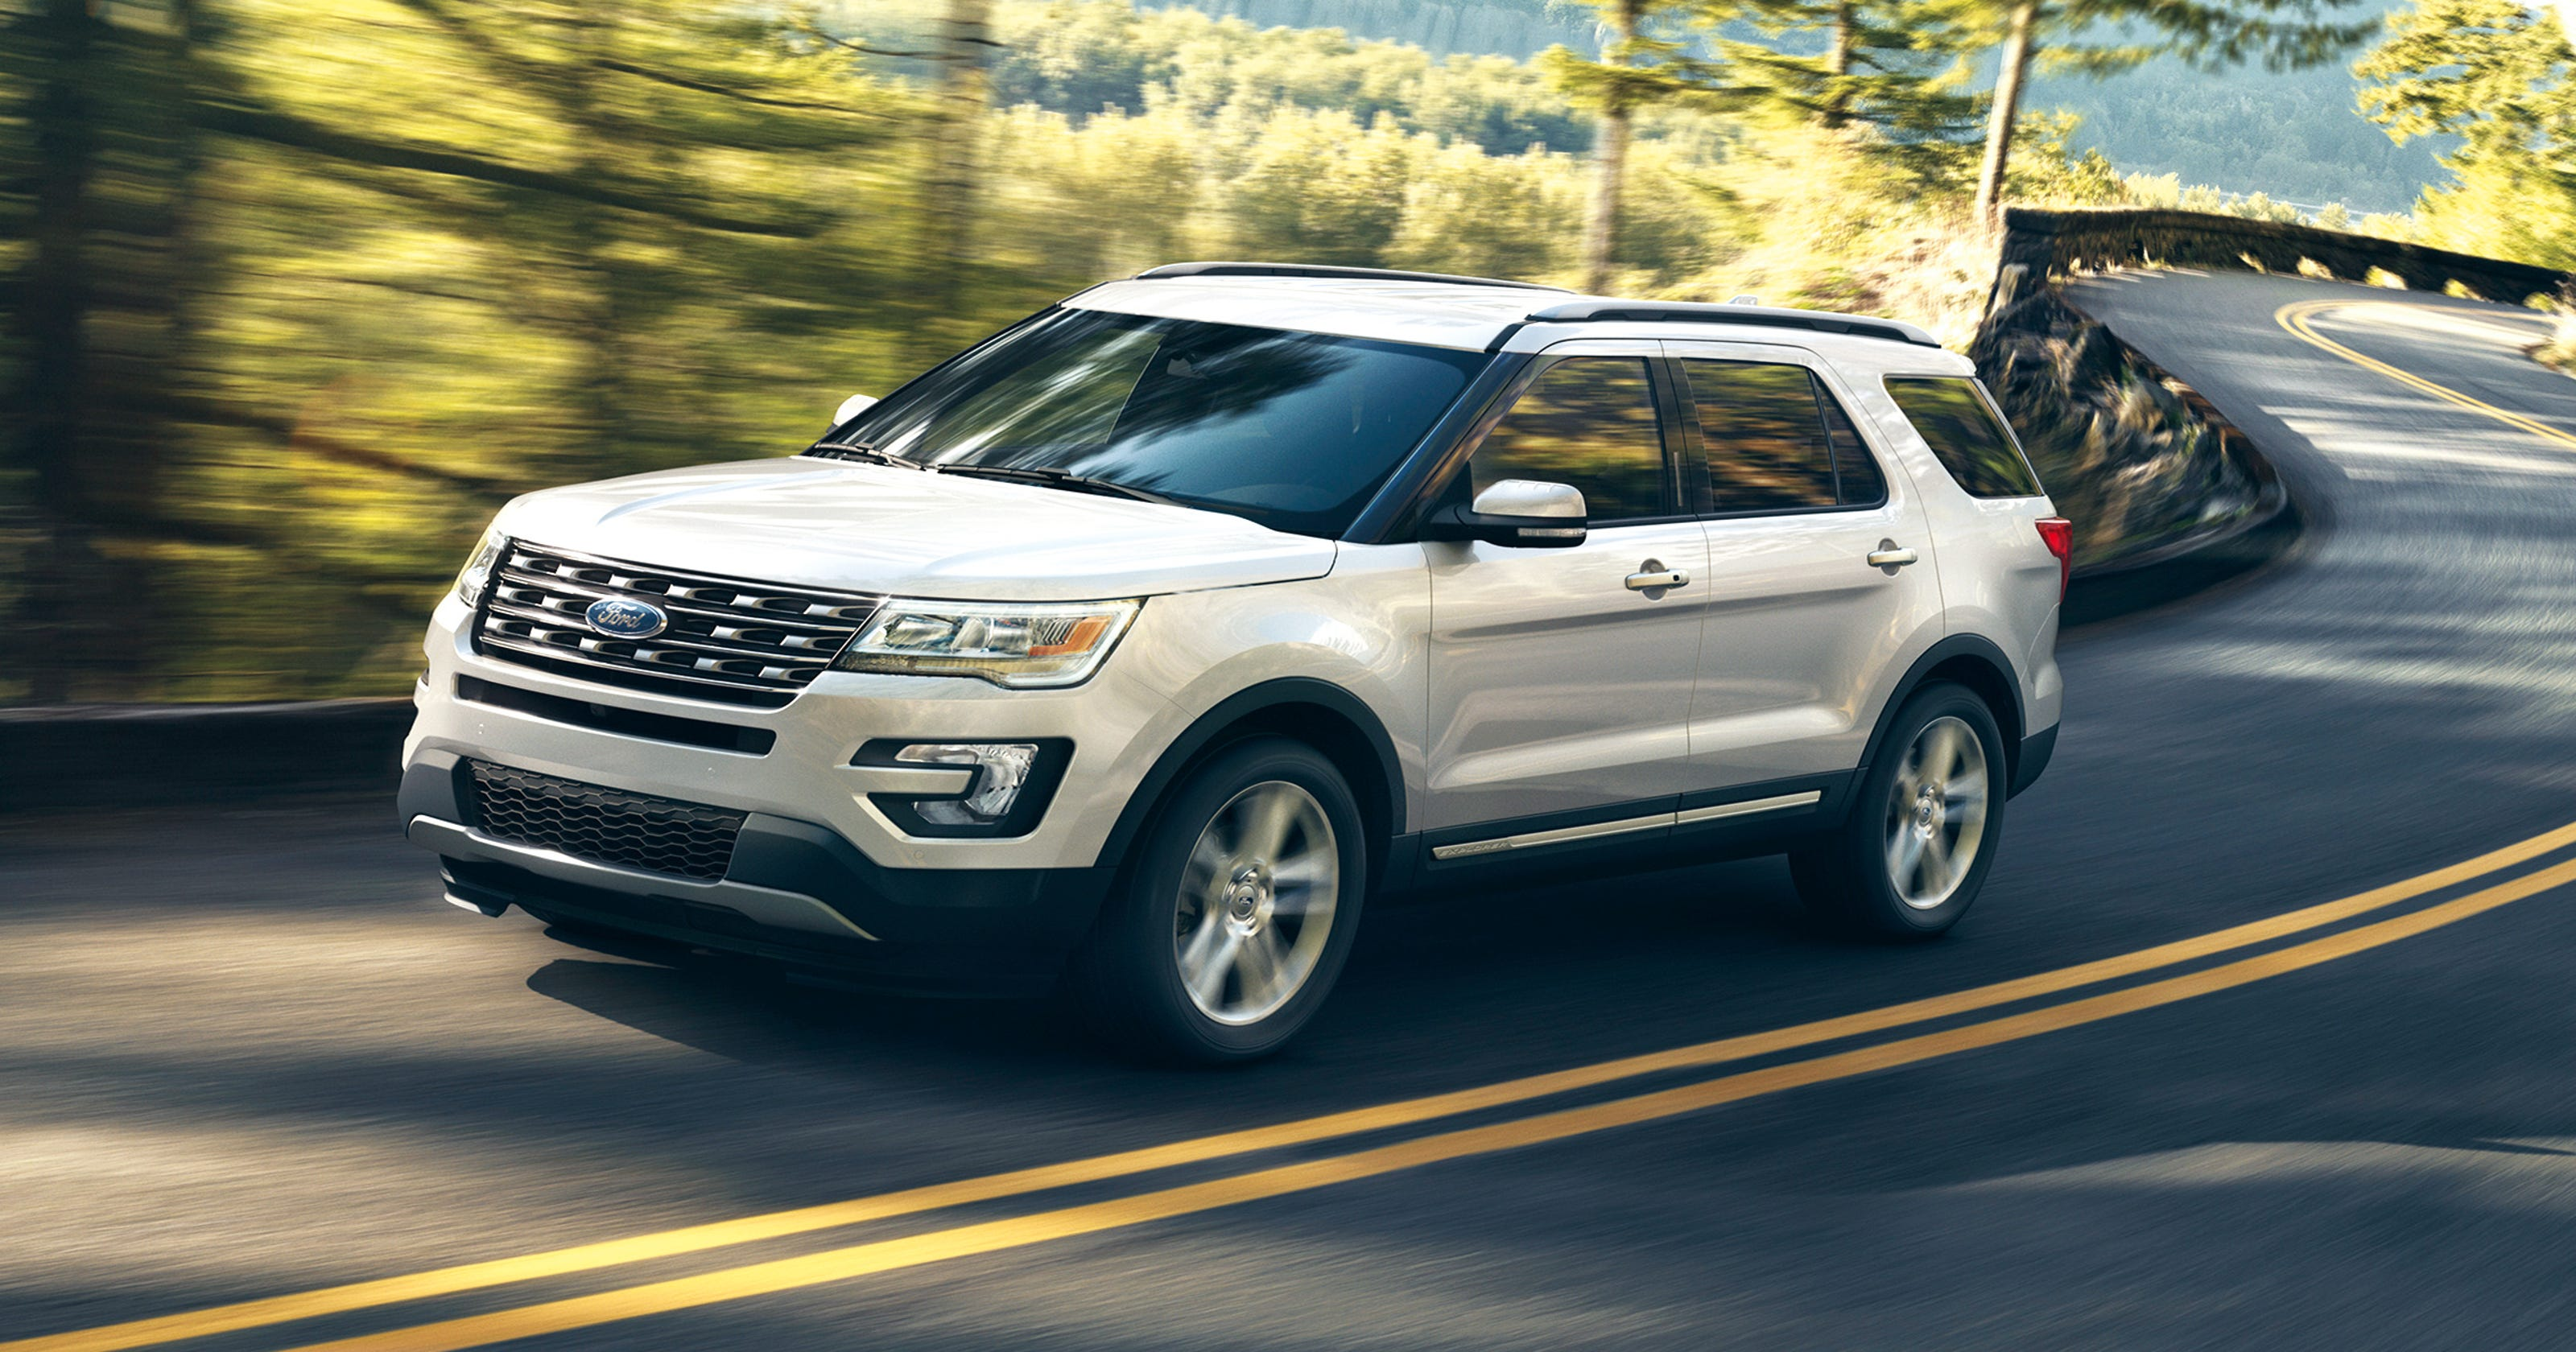 Ford Explorer drivers complaining of dizziness, nausea, vomiting